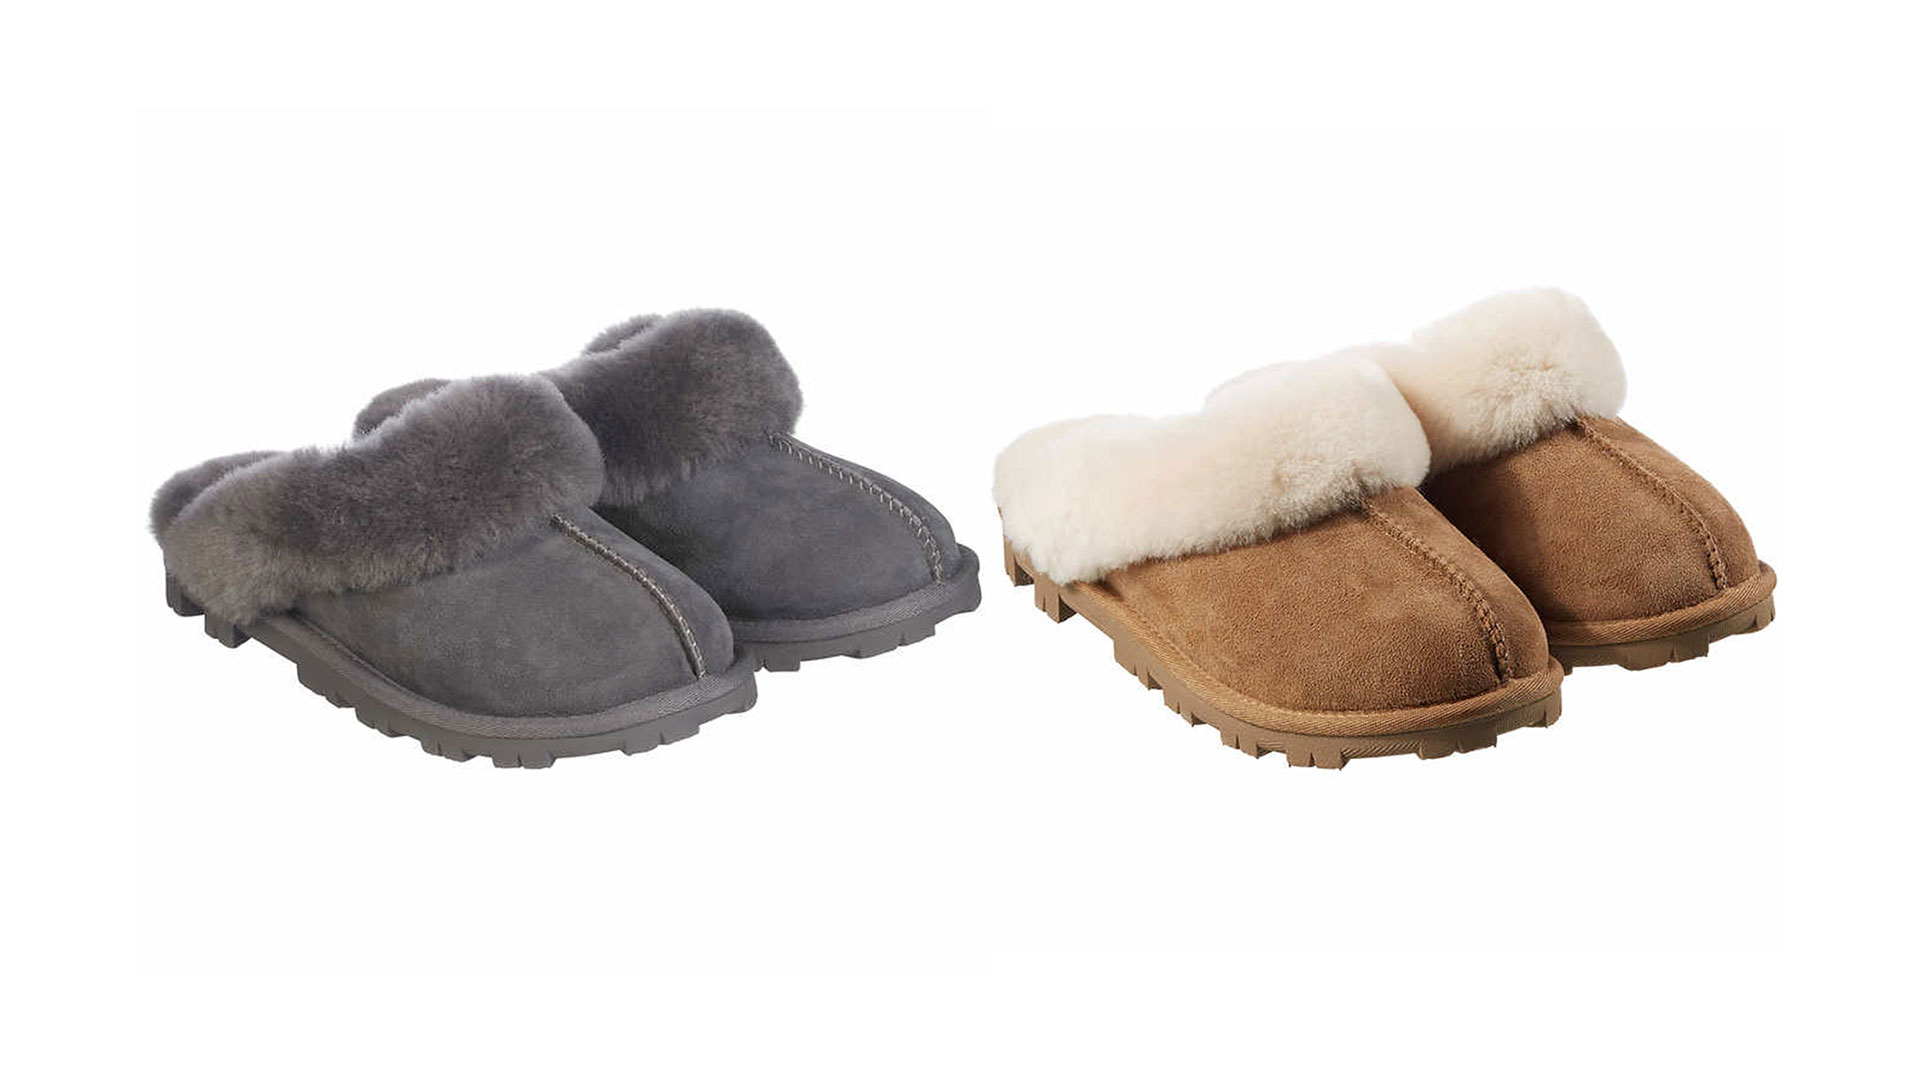 Costco Shearling Slippers